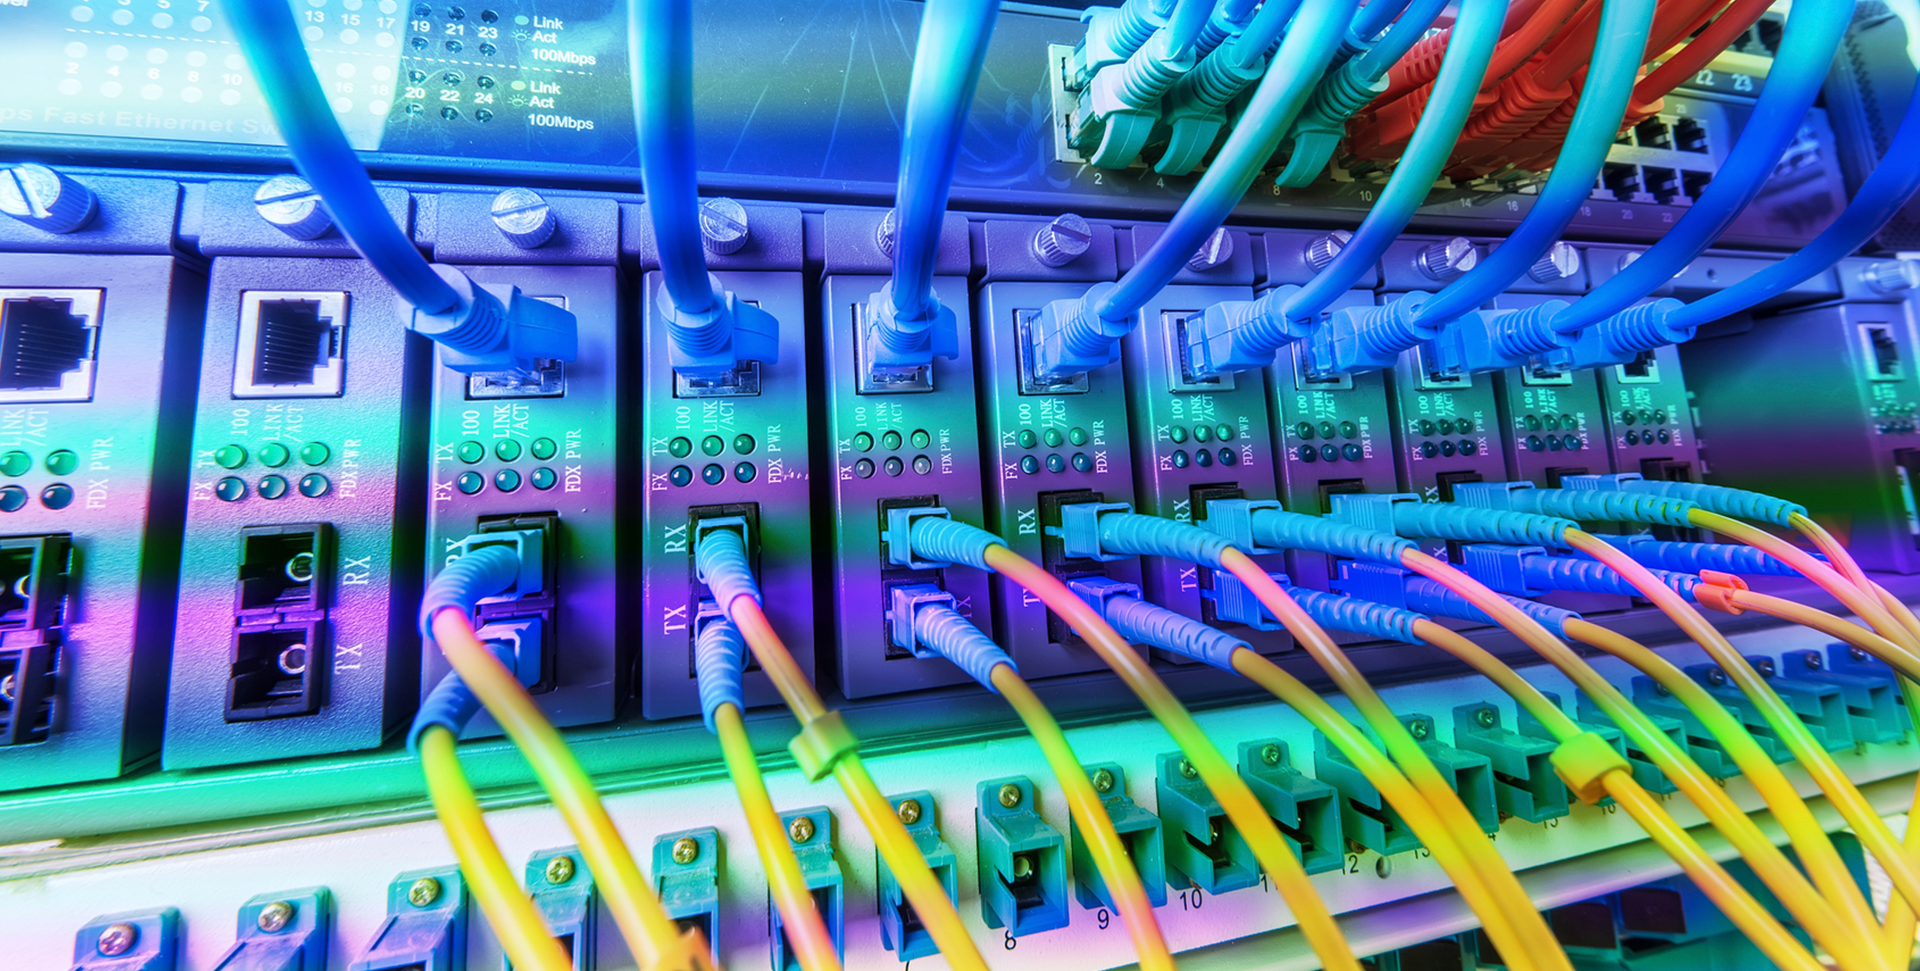 Image depicting server wires for cybersecurity